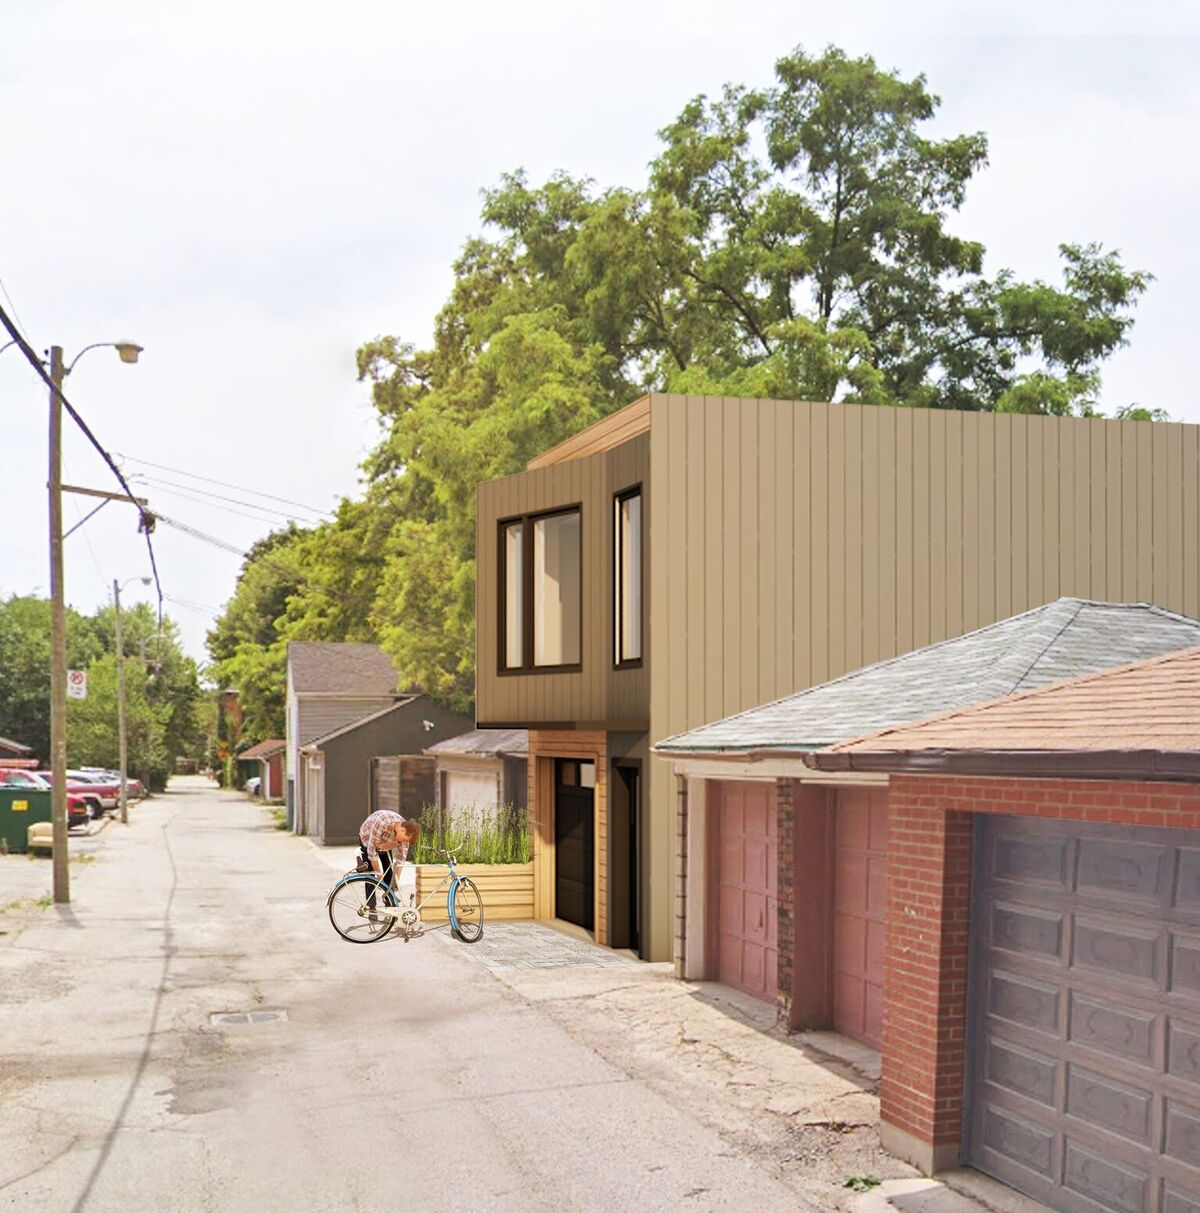 Laneway Housing in Toronto by The Architect Builders Collaborative Inc.